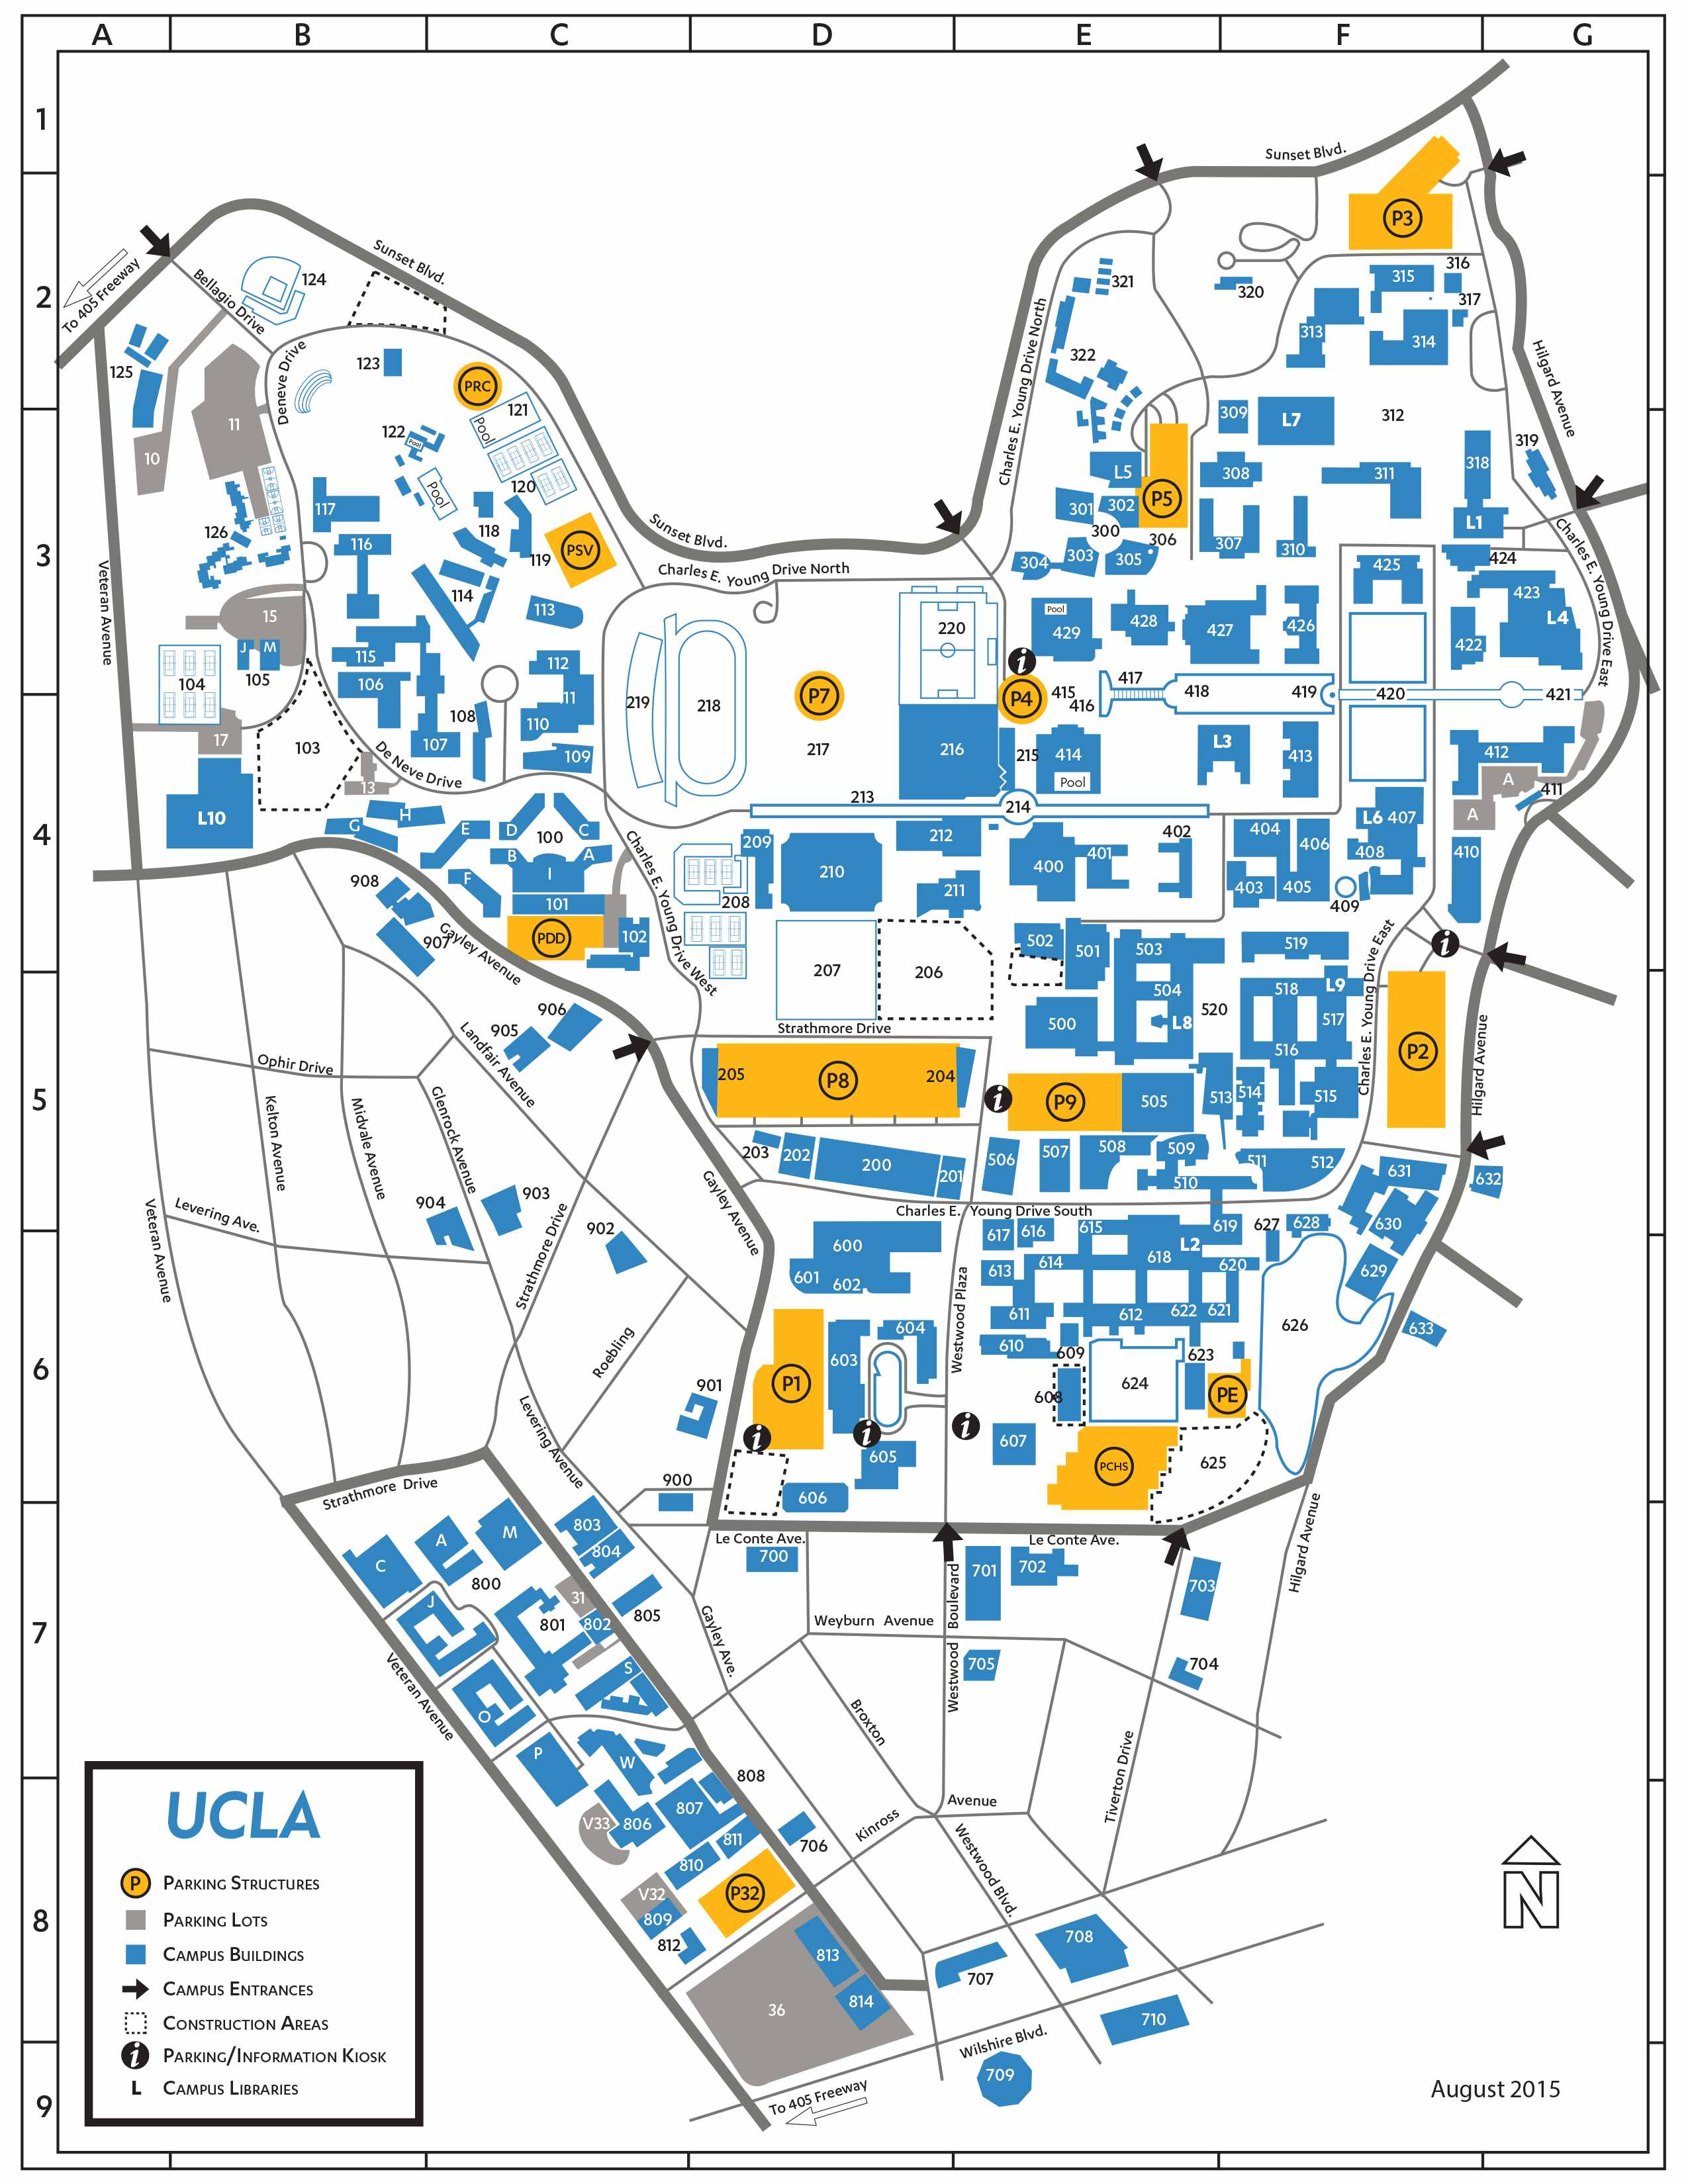 avenza maps ucla campus map android apps on google play ucla mapdownloads layer ucla interactive campus map overview of ucla health systemat westwood . ucla campus map  my blog